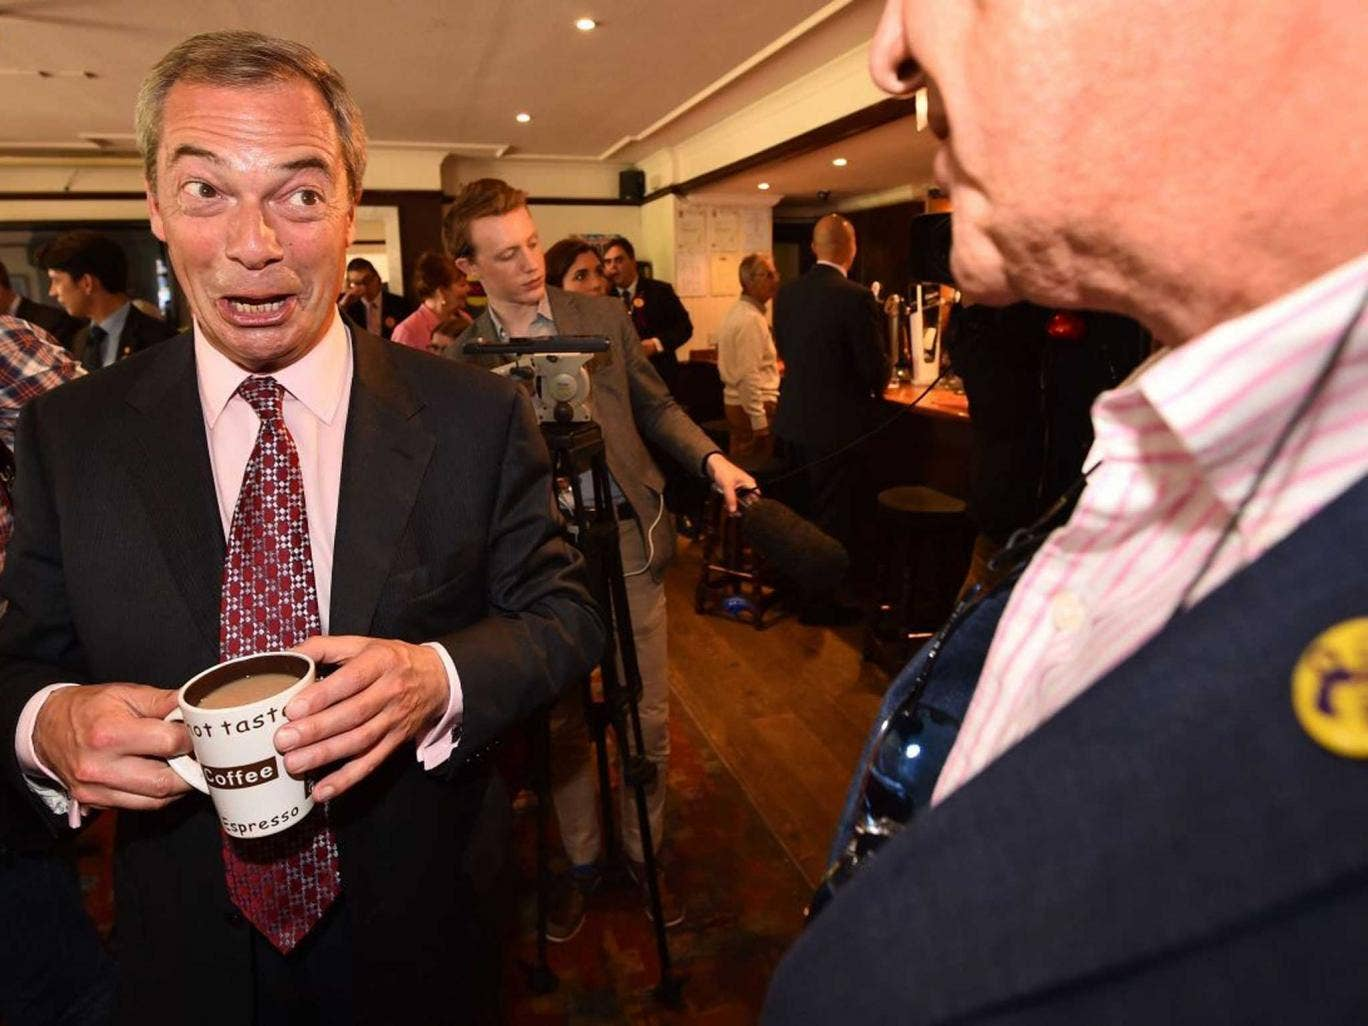 Immigration and the economy: Ukip's call to arms